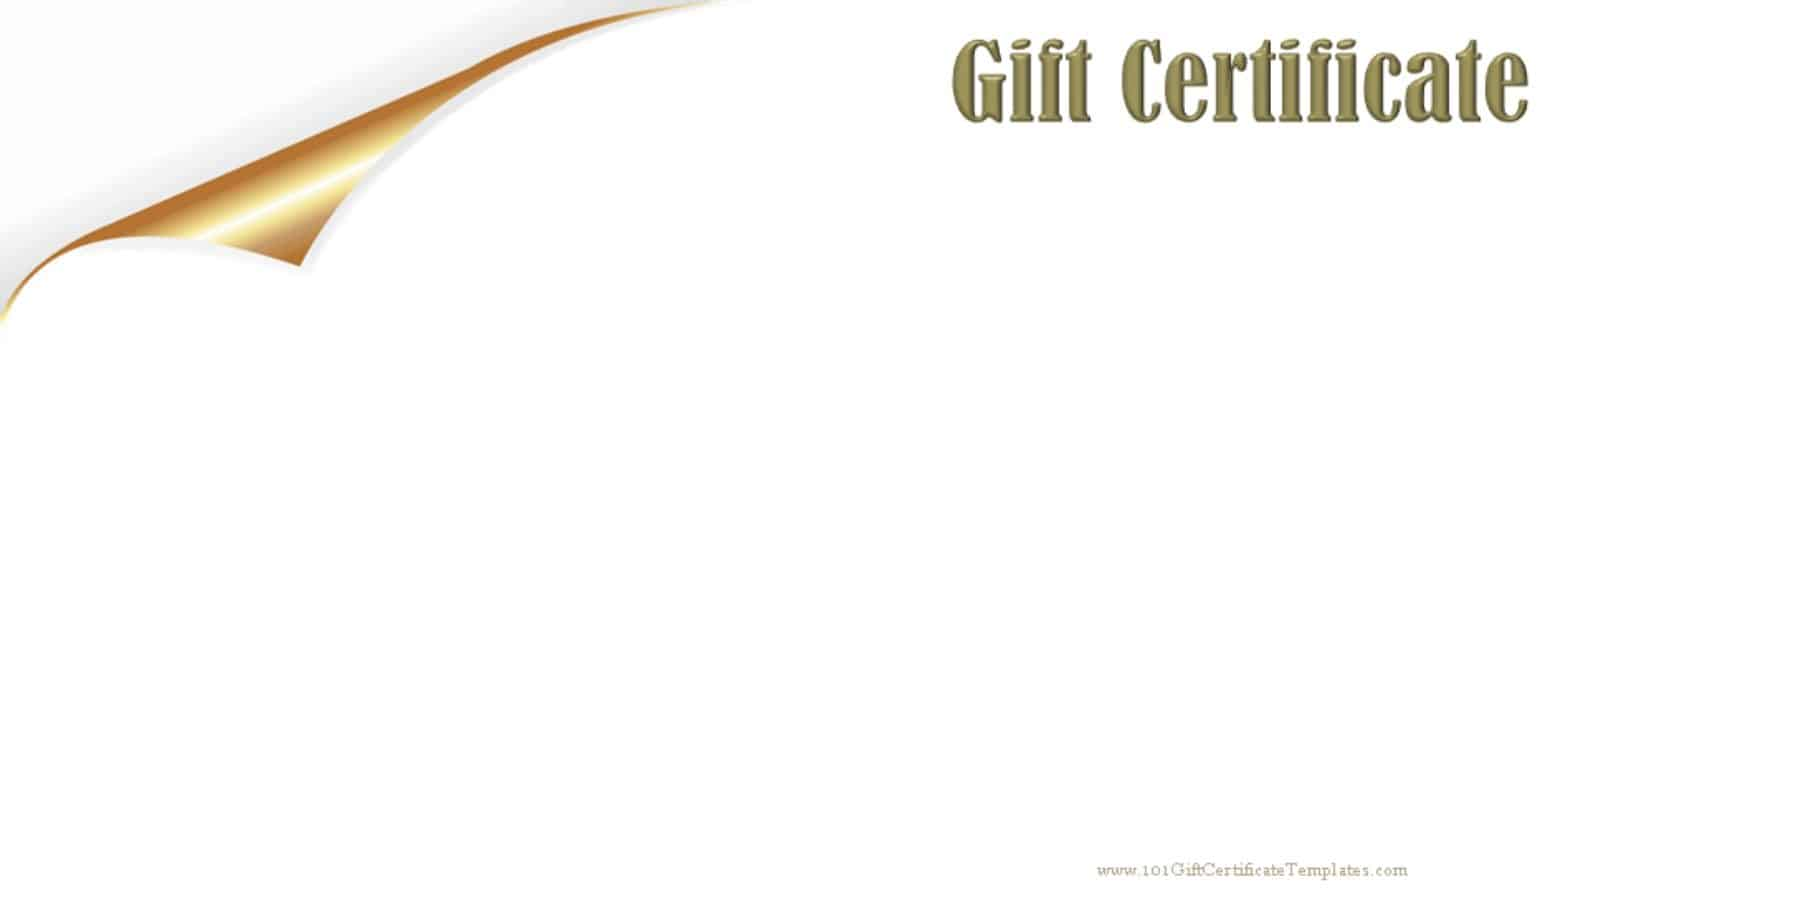 Blank Gift Certificate With White Background CUSTOMIZE U0026 PRINT  Printable Gift Vouchers Template